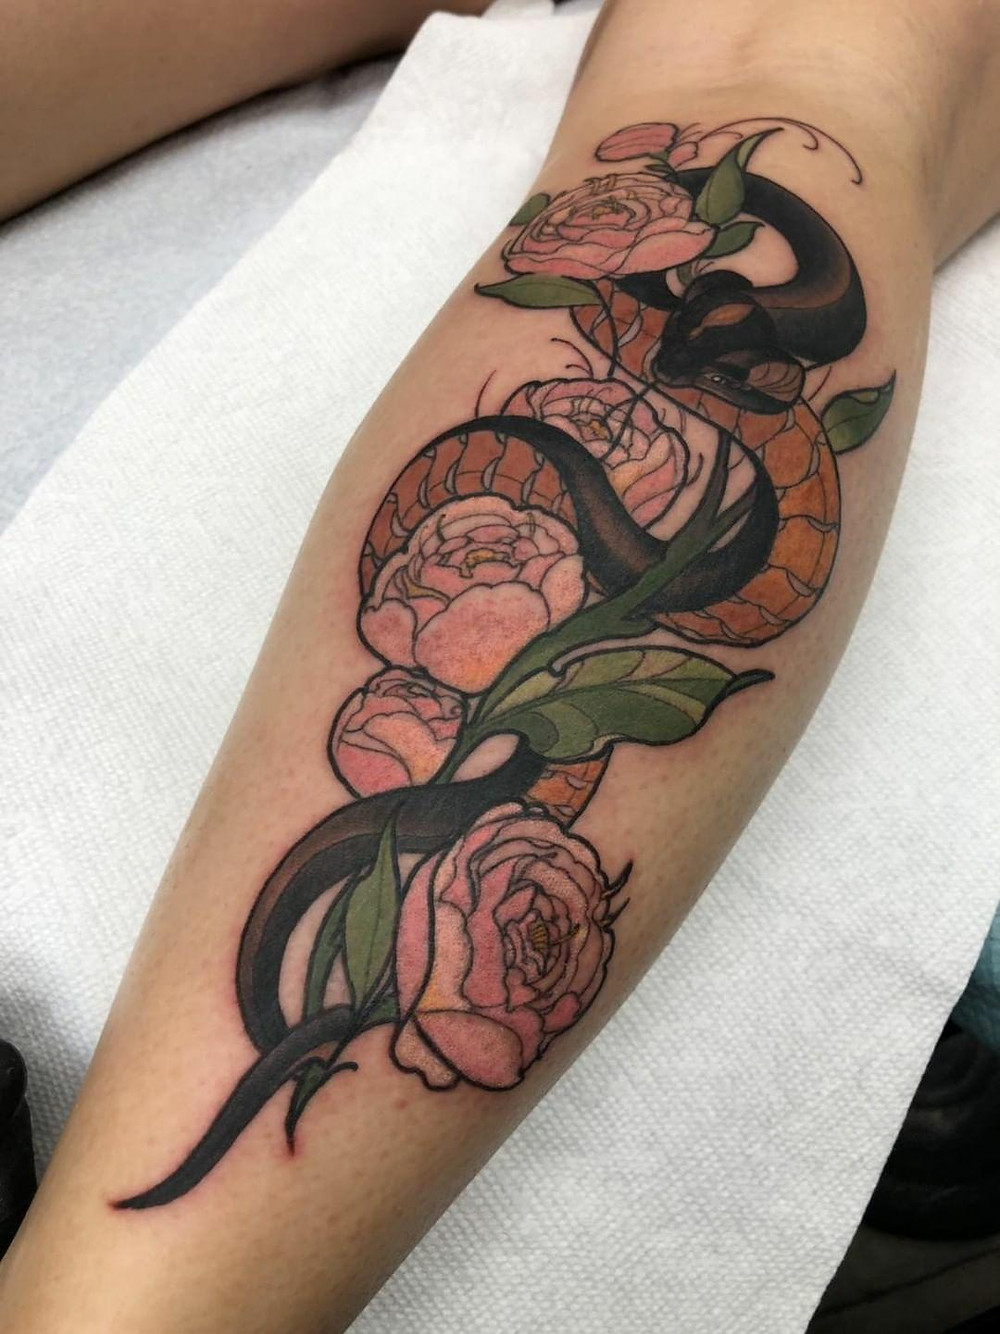 Snake and floral tattoo by Justin Tauch.